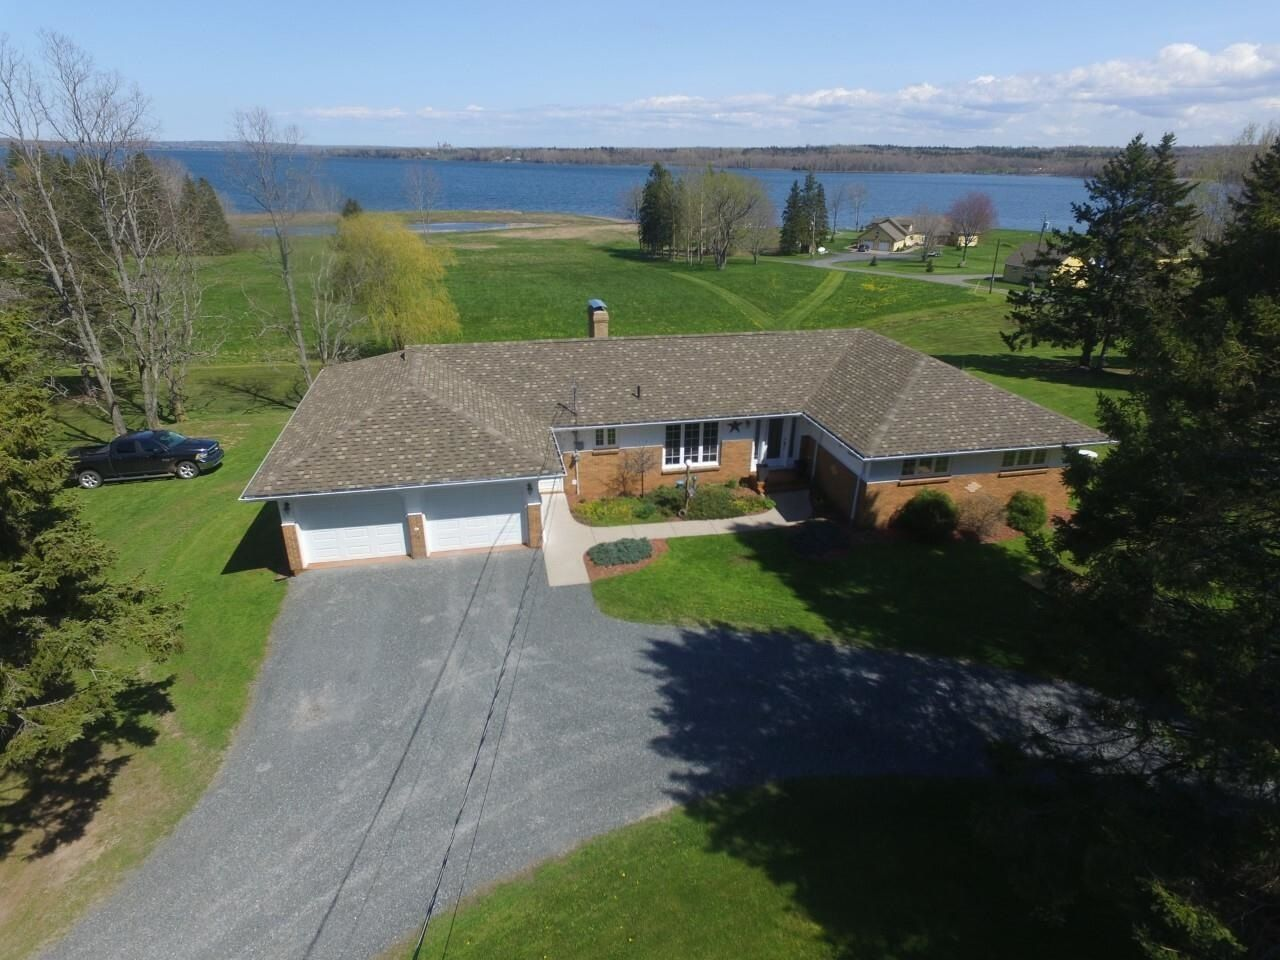 Main Photo: 2044 Highway 376 in Lyons Brook: 108-Rural Pictou County Residential for sale (Northern Region)  : MLS®# 202117508